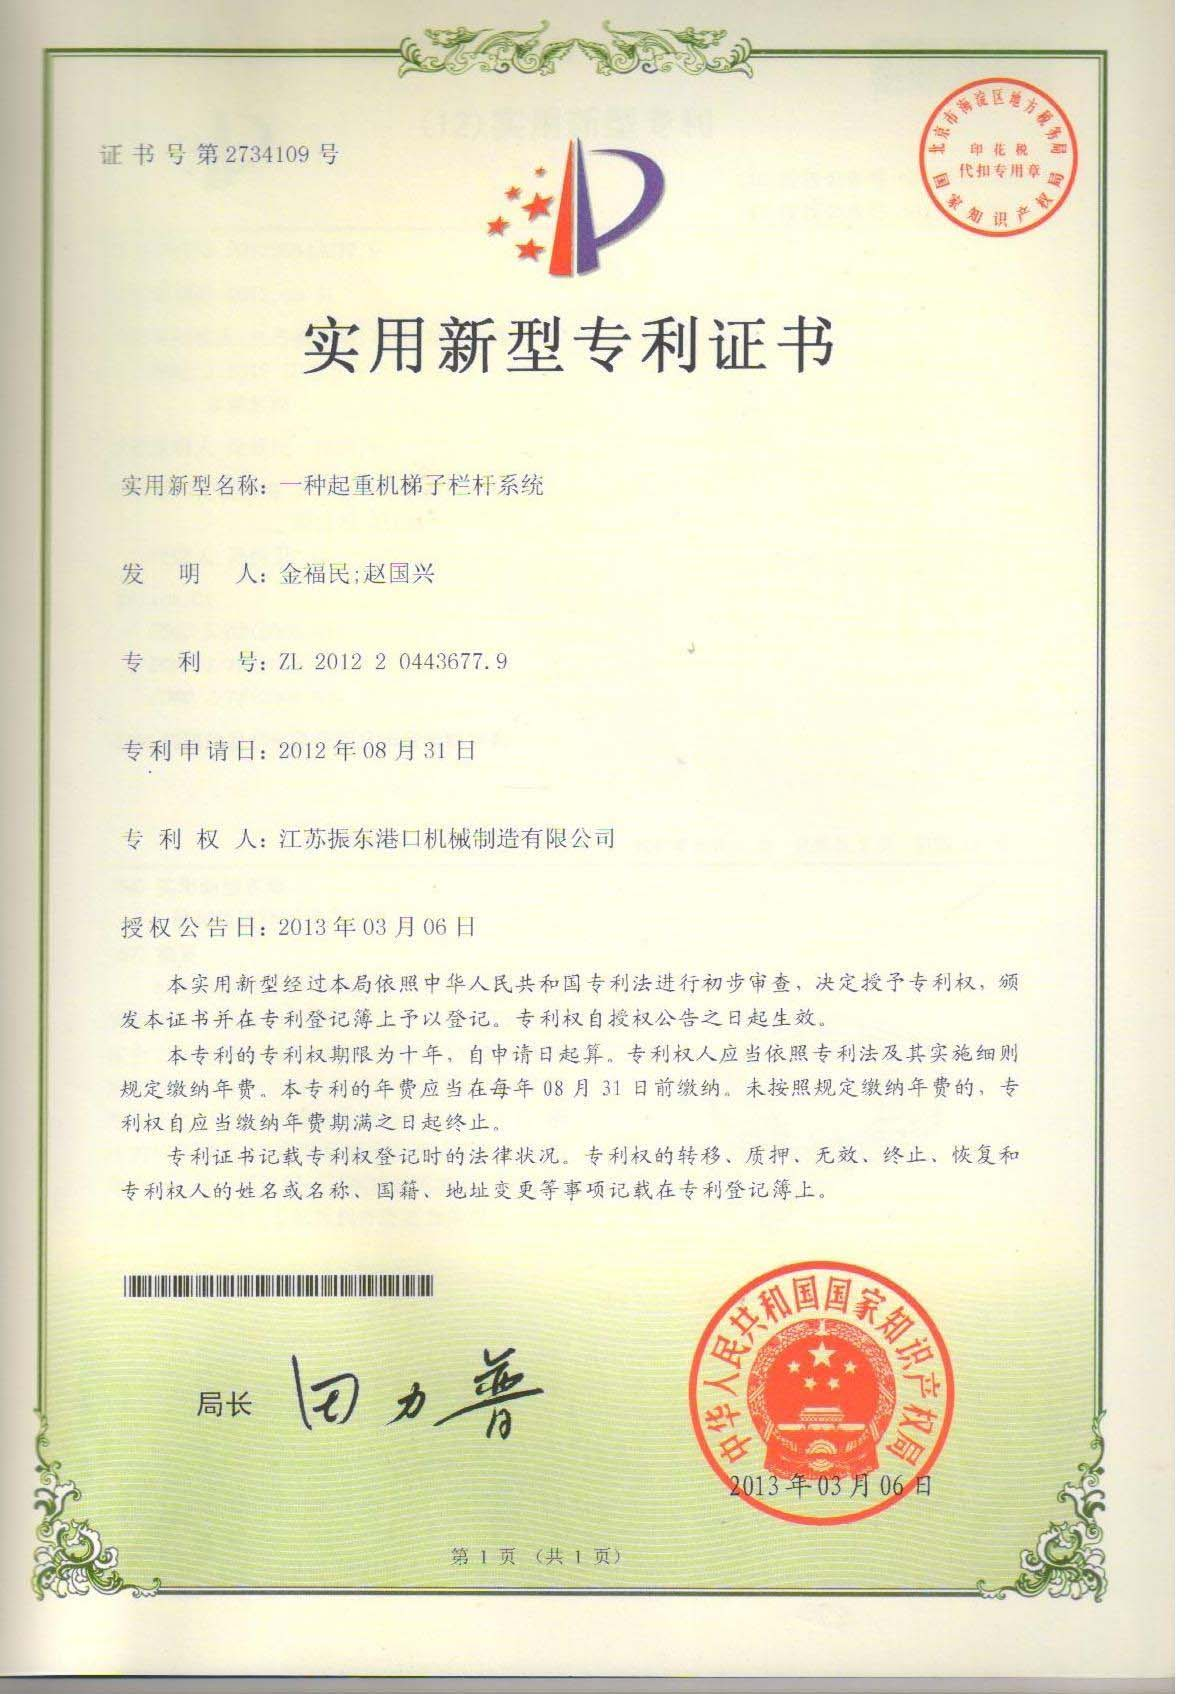 Utility model patent certificate